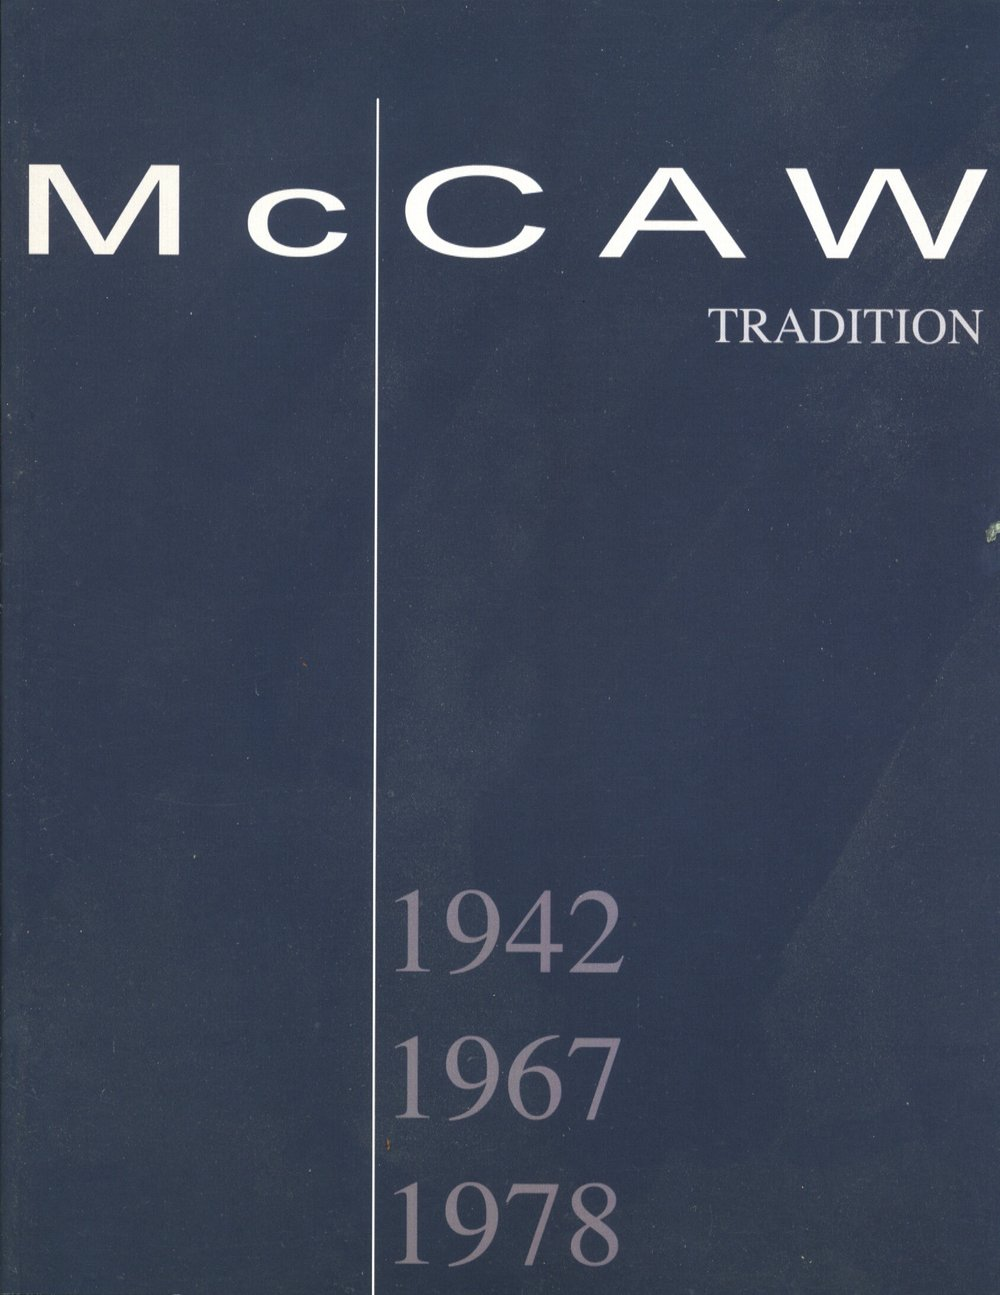 Scan-cat2 mccaw copy.jpg